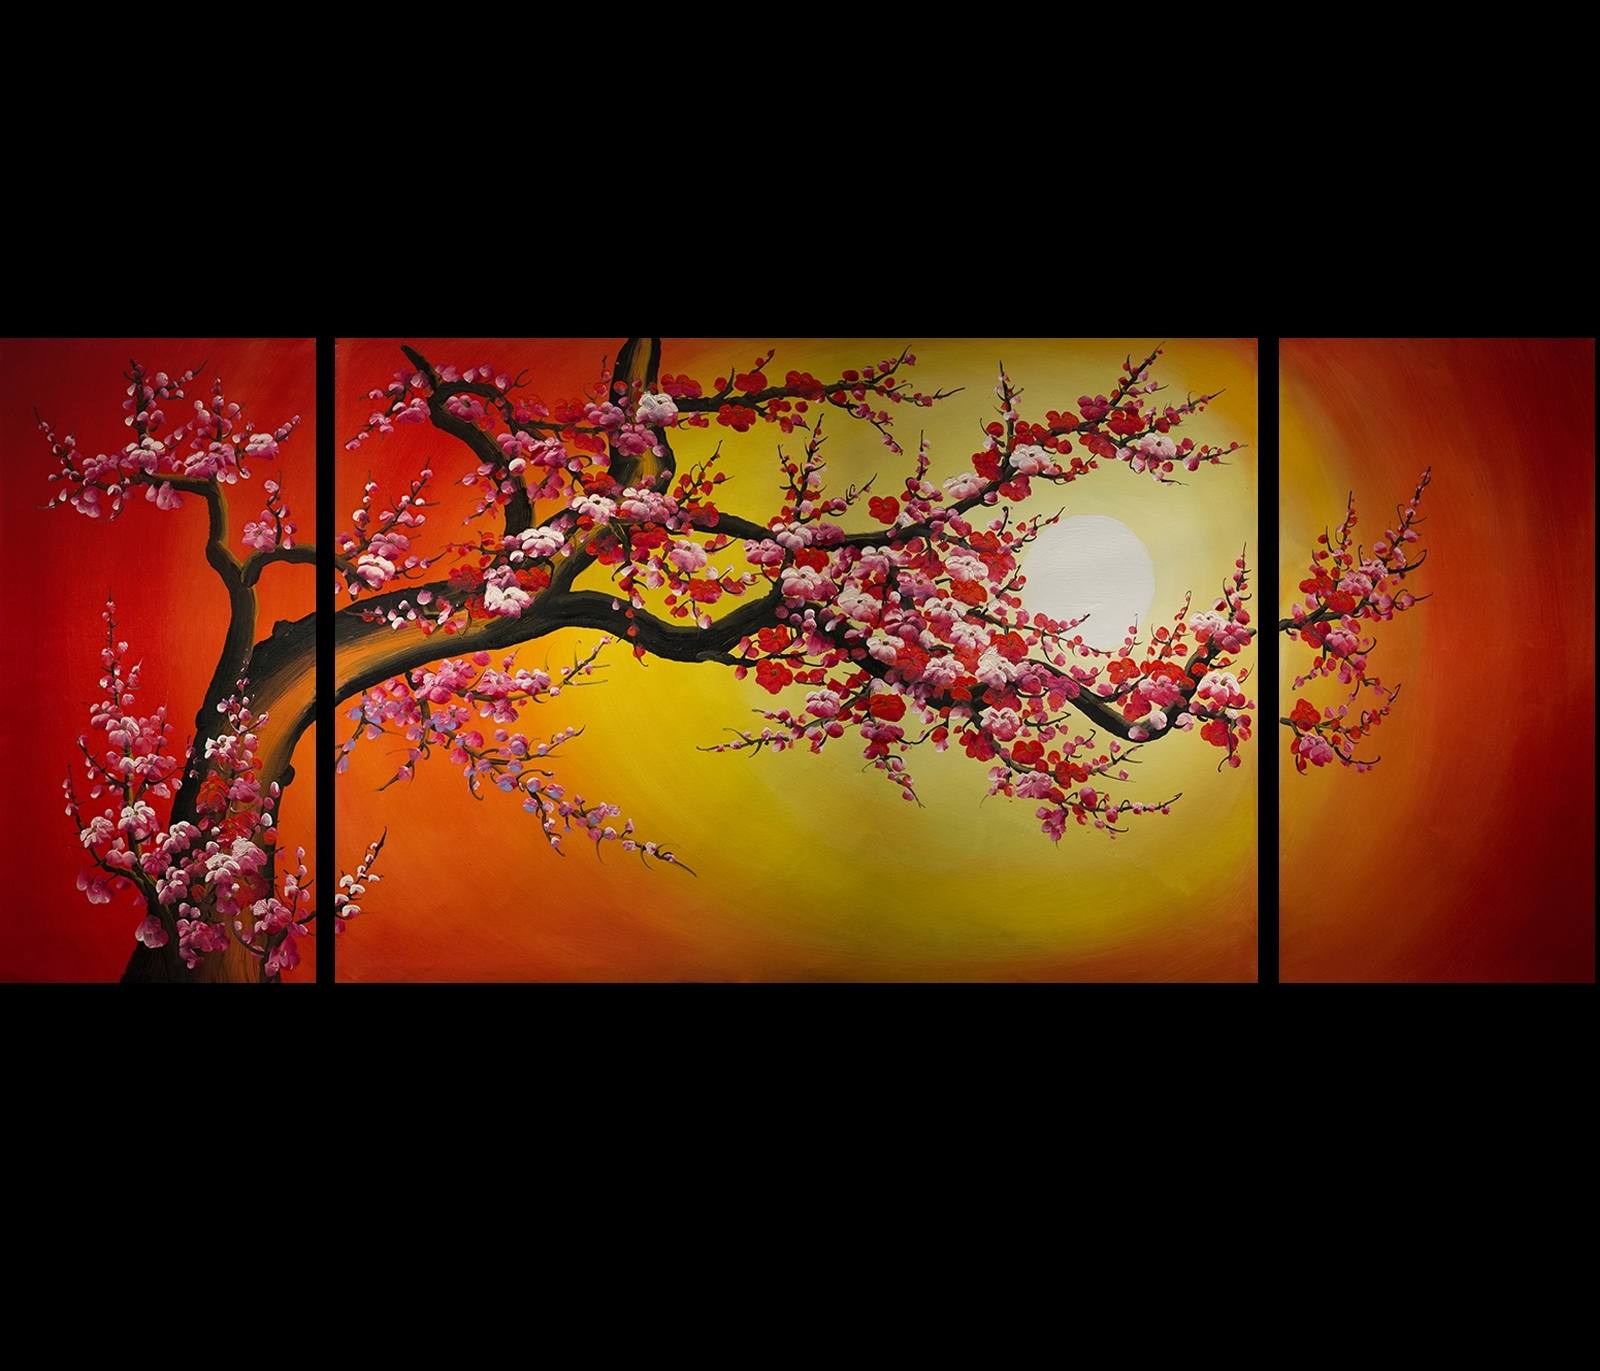 Chinese Cherry Blossom Feng Shui Oil Painting Abstract Art Modern Pertaining To 2018 Abstract Cherry Blossom Wall Art (Gallery 11 of 20)